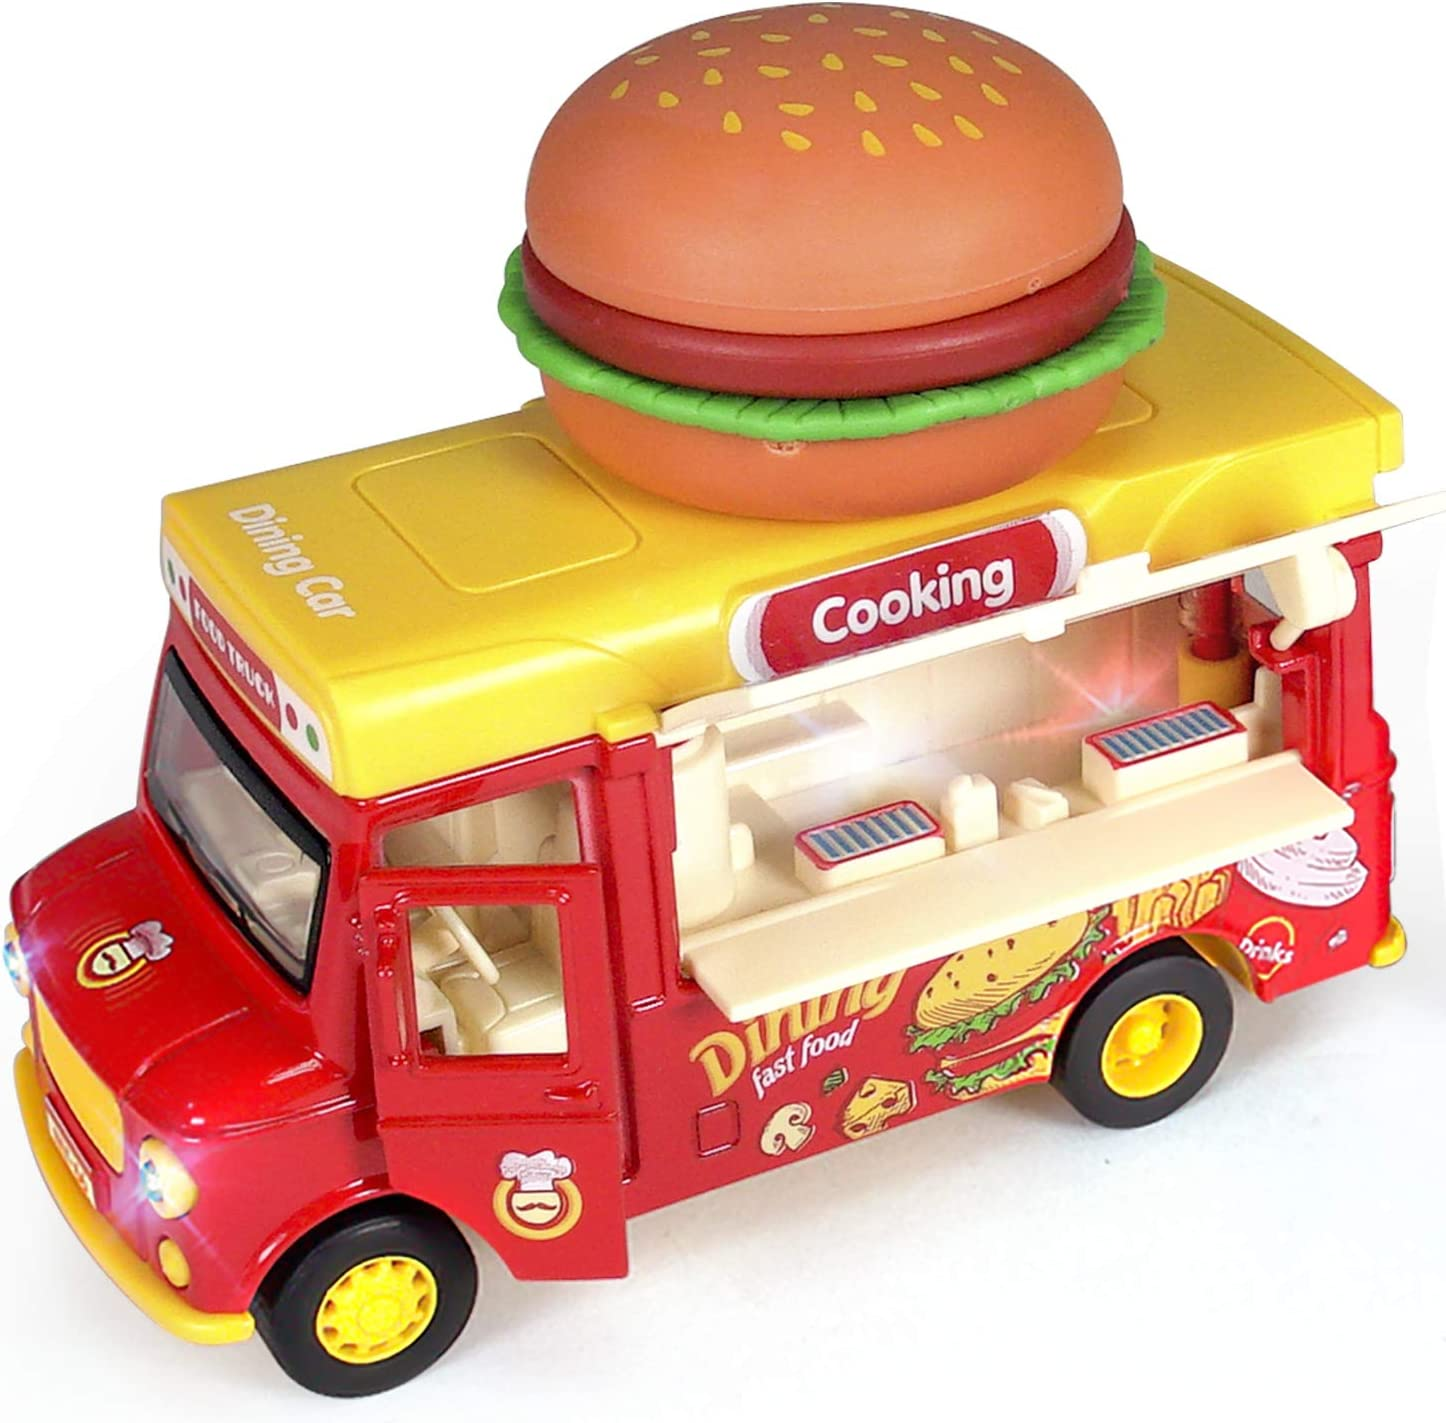 Alloy Toy Cars - Creative Decorative Models of Car Food Trucks with Sound and Light, for Children Girls and Boys.(red)